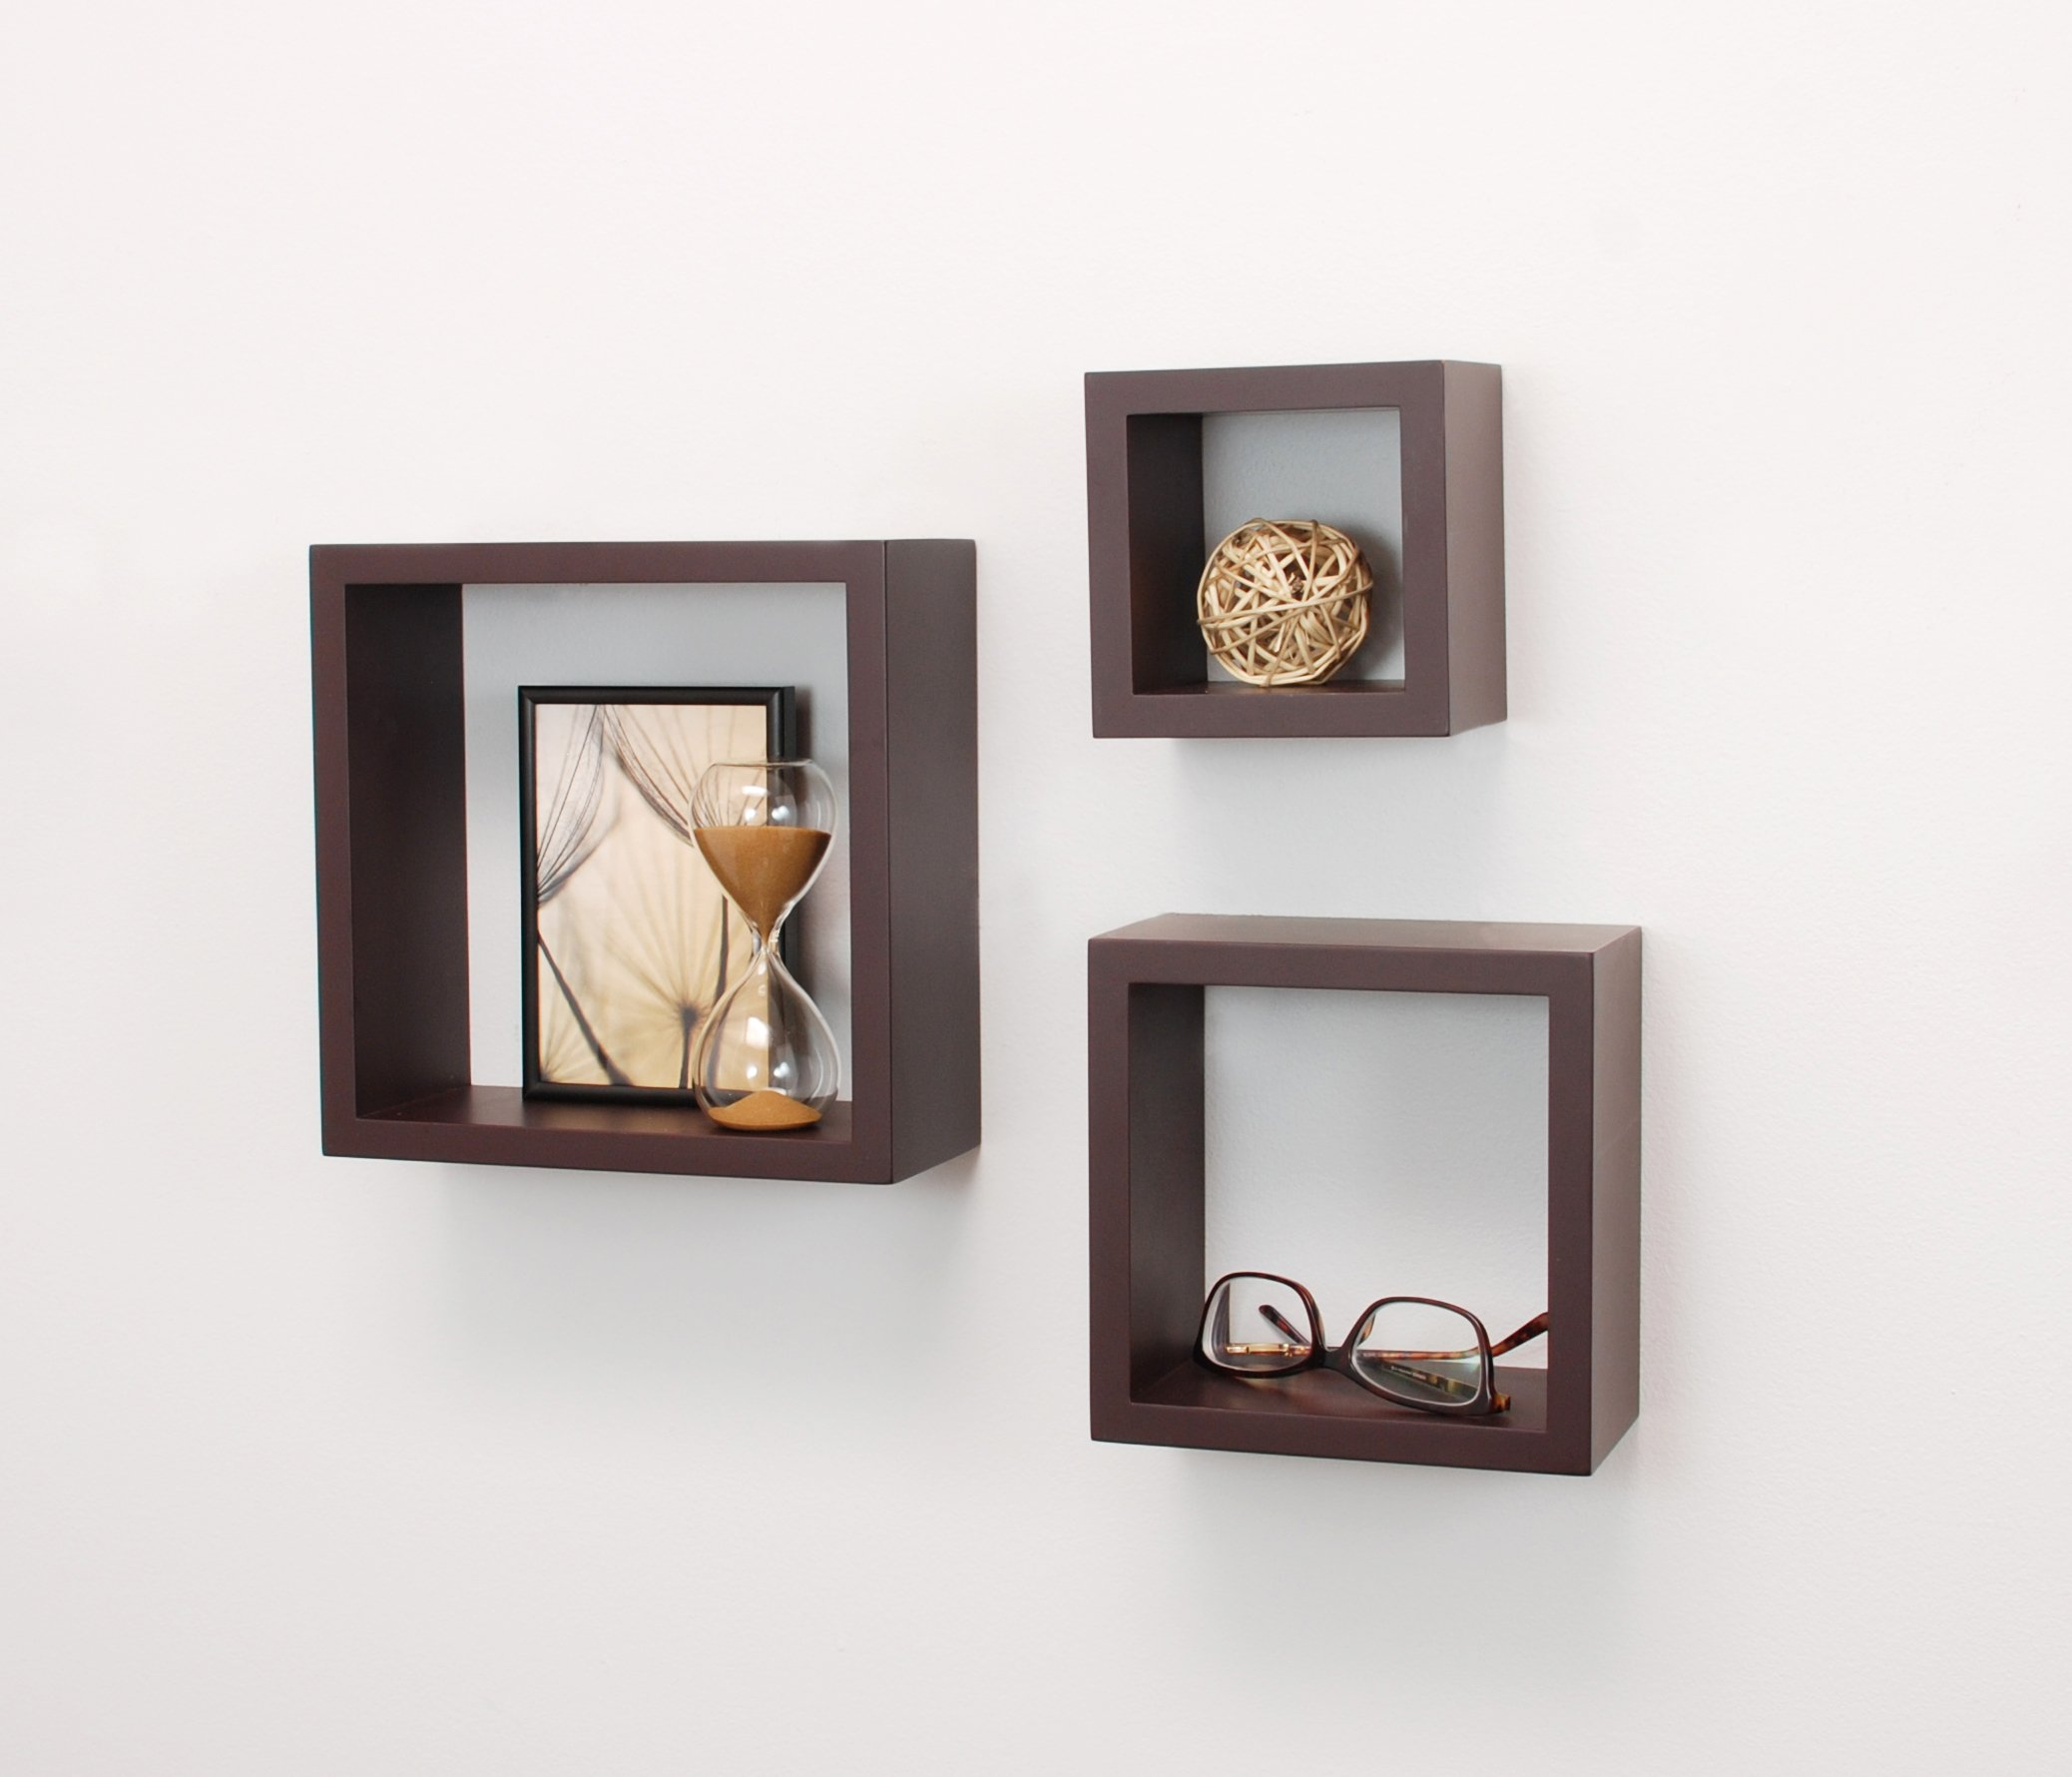 Kiera Grace Cubbi Contemporary Floating Wall Shelves, 5 by 5-Inch, 7 by 7-Inch, 9 by 9-Inch, Espresso, Set of 3 - 3-piece wall-mounted shelf set offers a clean, contemporary display style MDF construction in three sizes: small, medium, and large All cubes are 4 inches deep - wall-shelves, living-room-furniture, living-room - 71SpBfBSJxL -